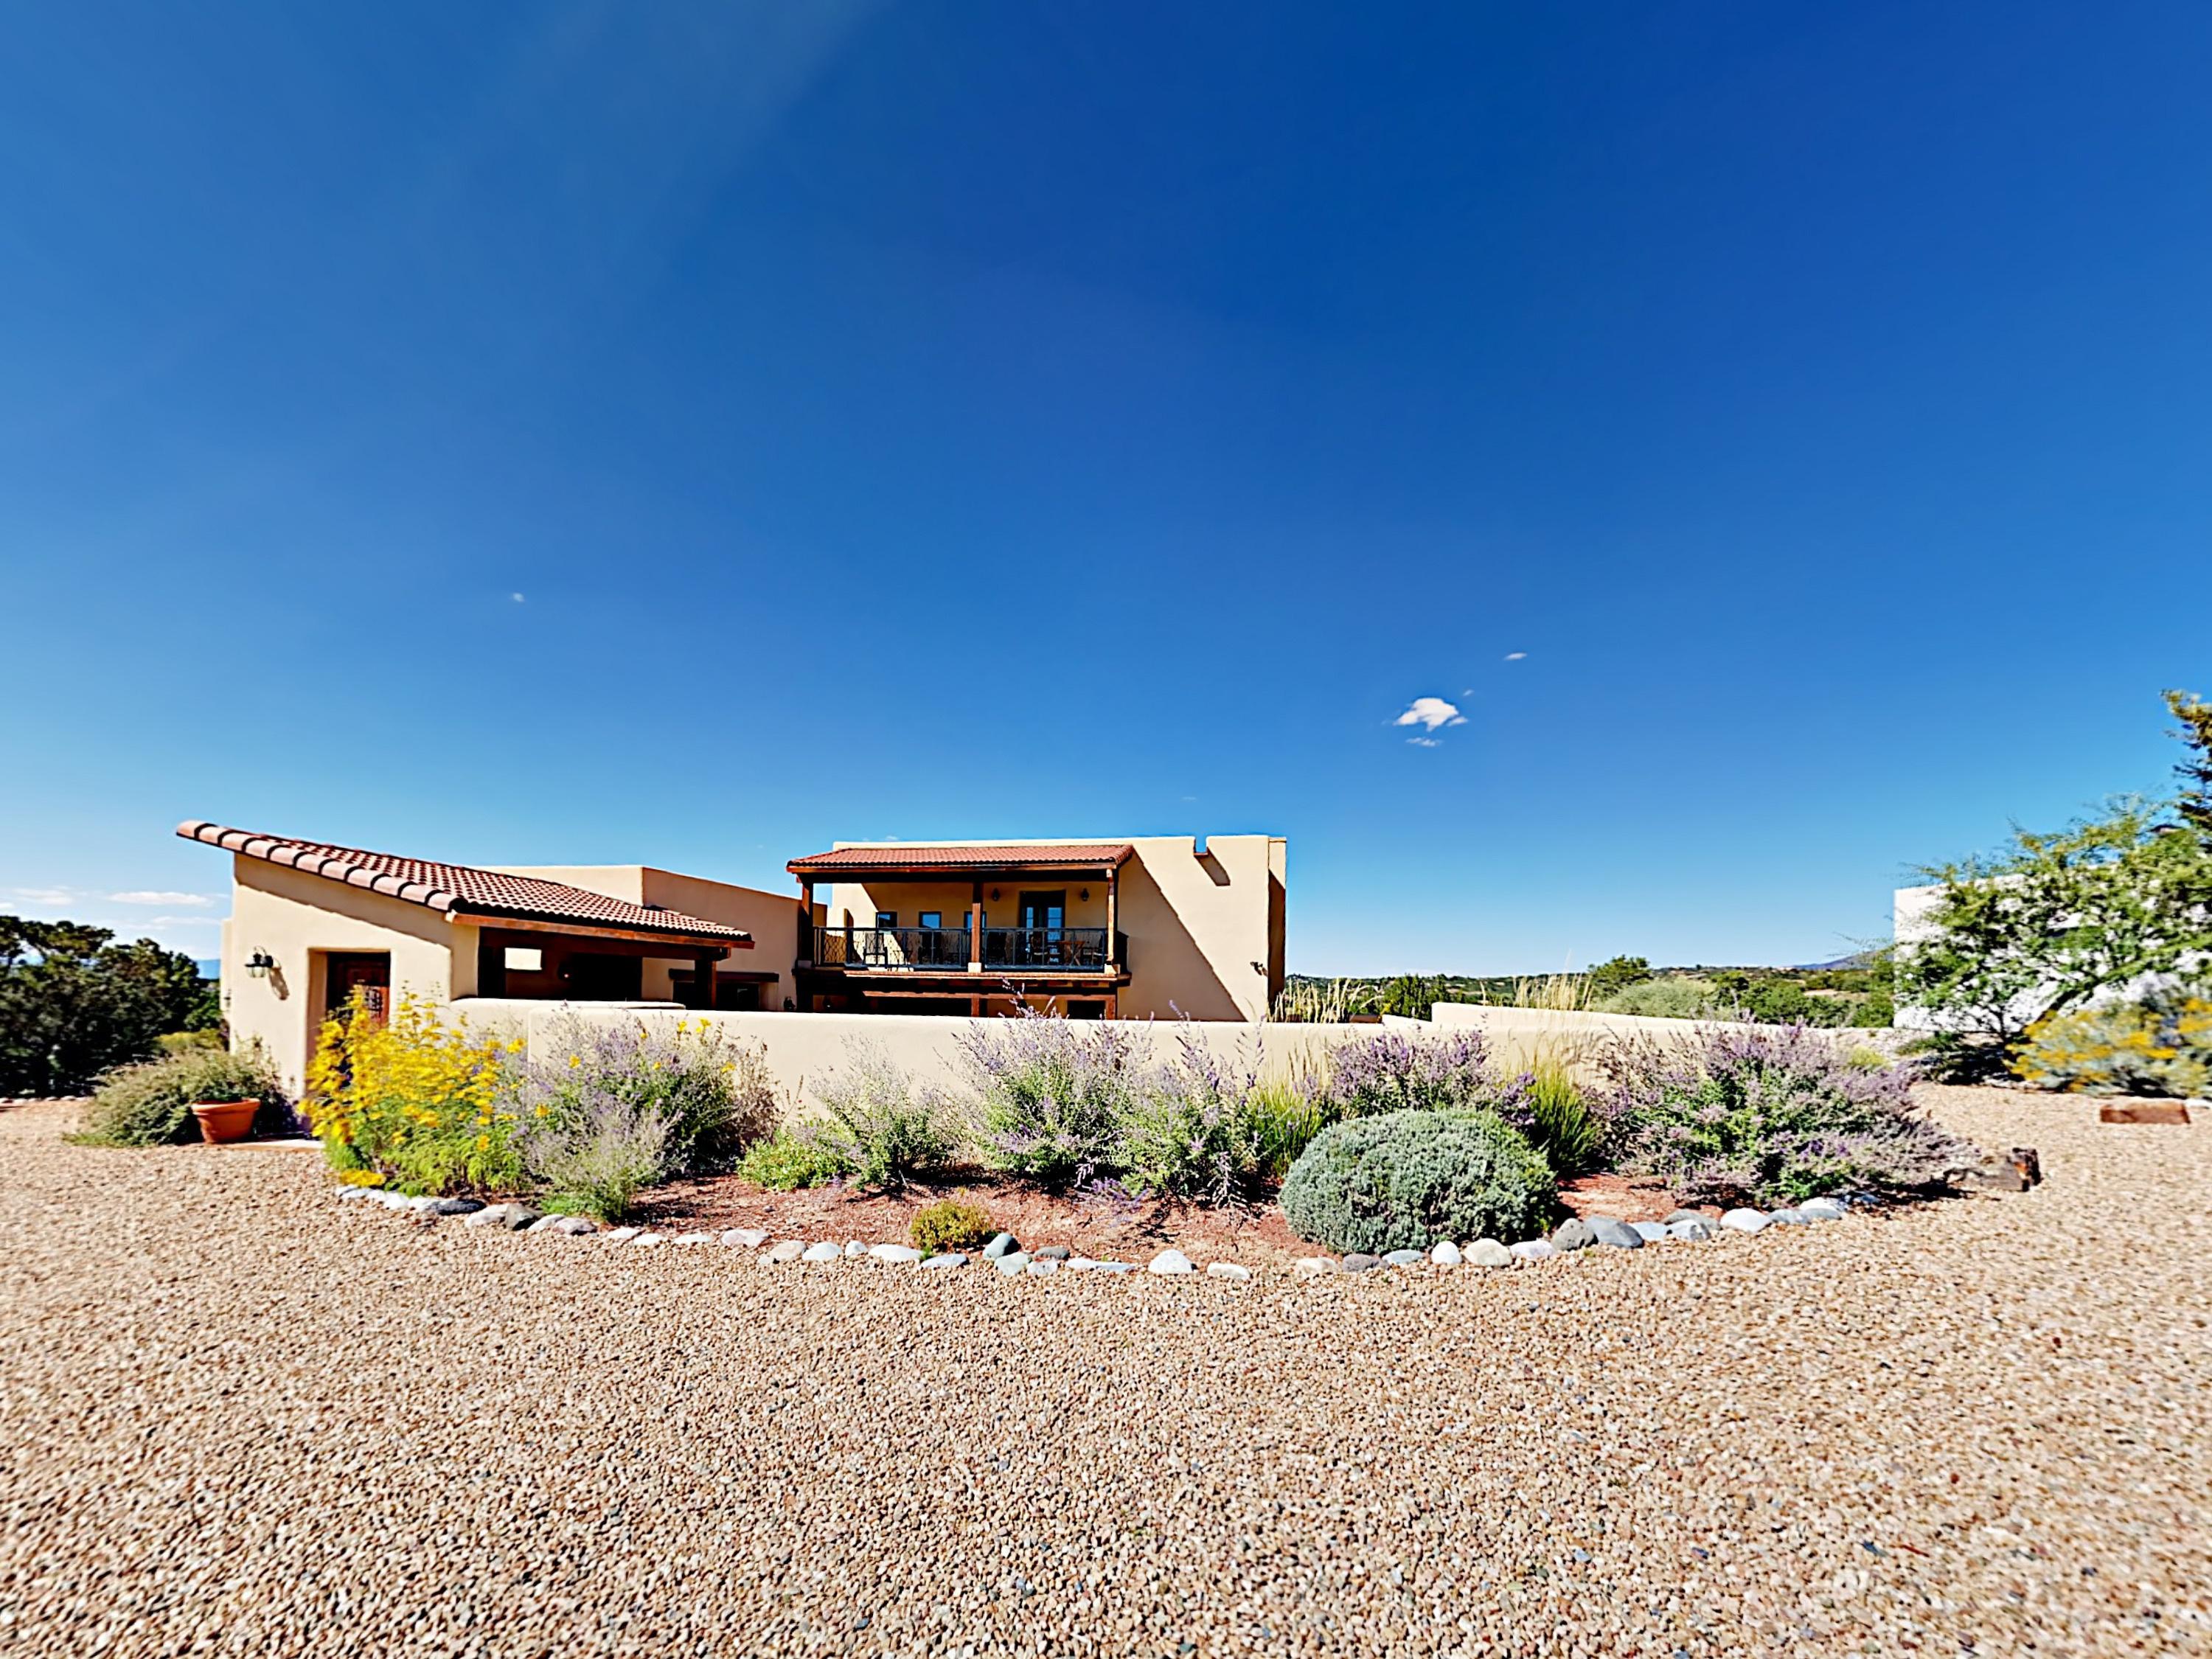 Santa Fe NM Vacation Rental Arrive on your